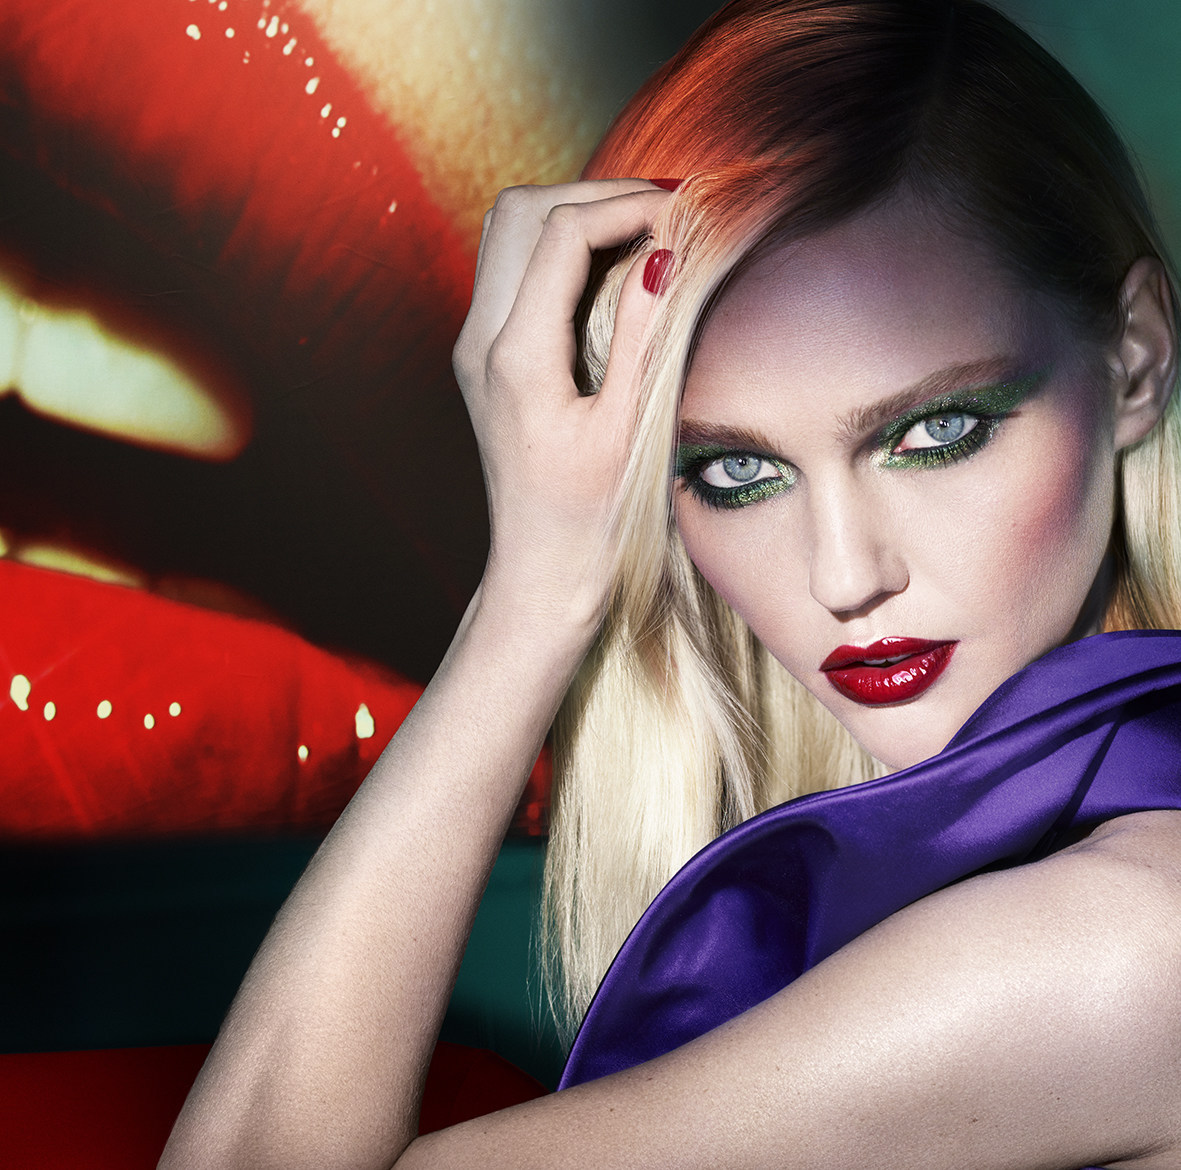 Lancôme Collabs with Mert & Marcus for New Collection